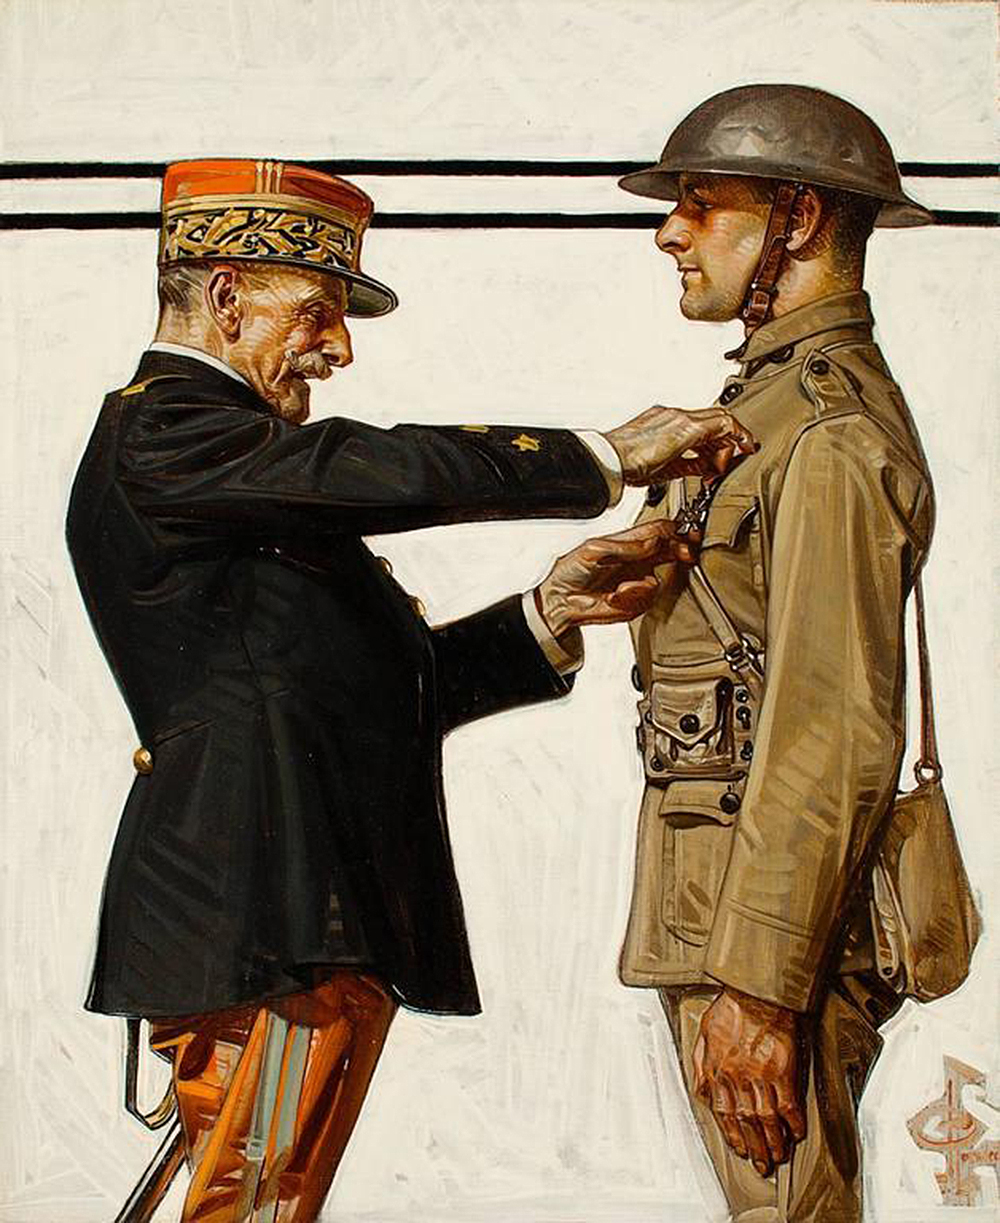 Croix de Guerre, by J.C. Leyendecker, from The Saturday Evening Post, 1918.